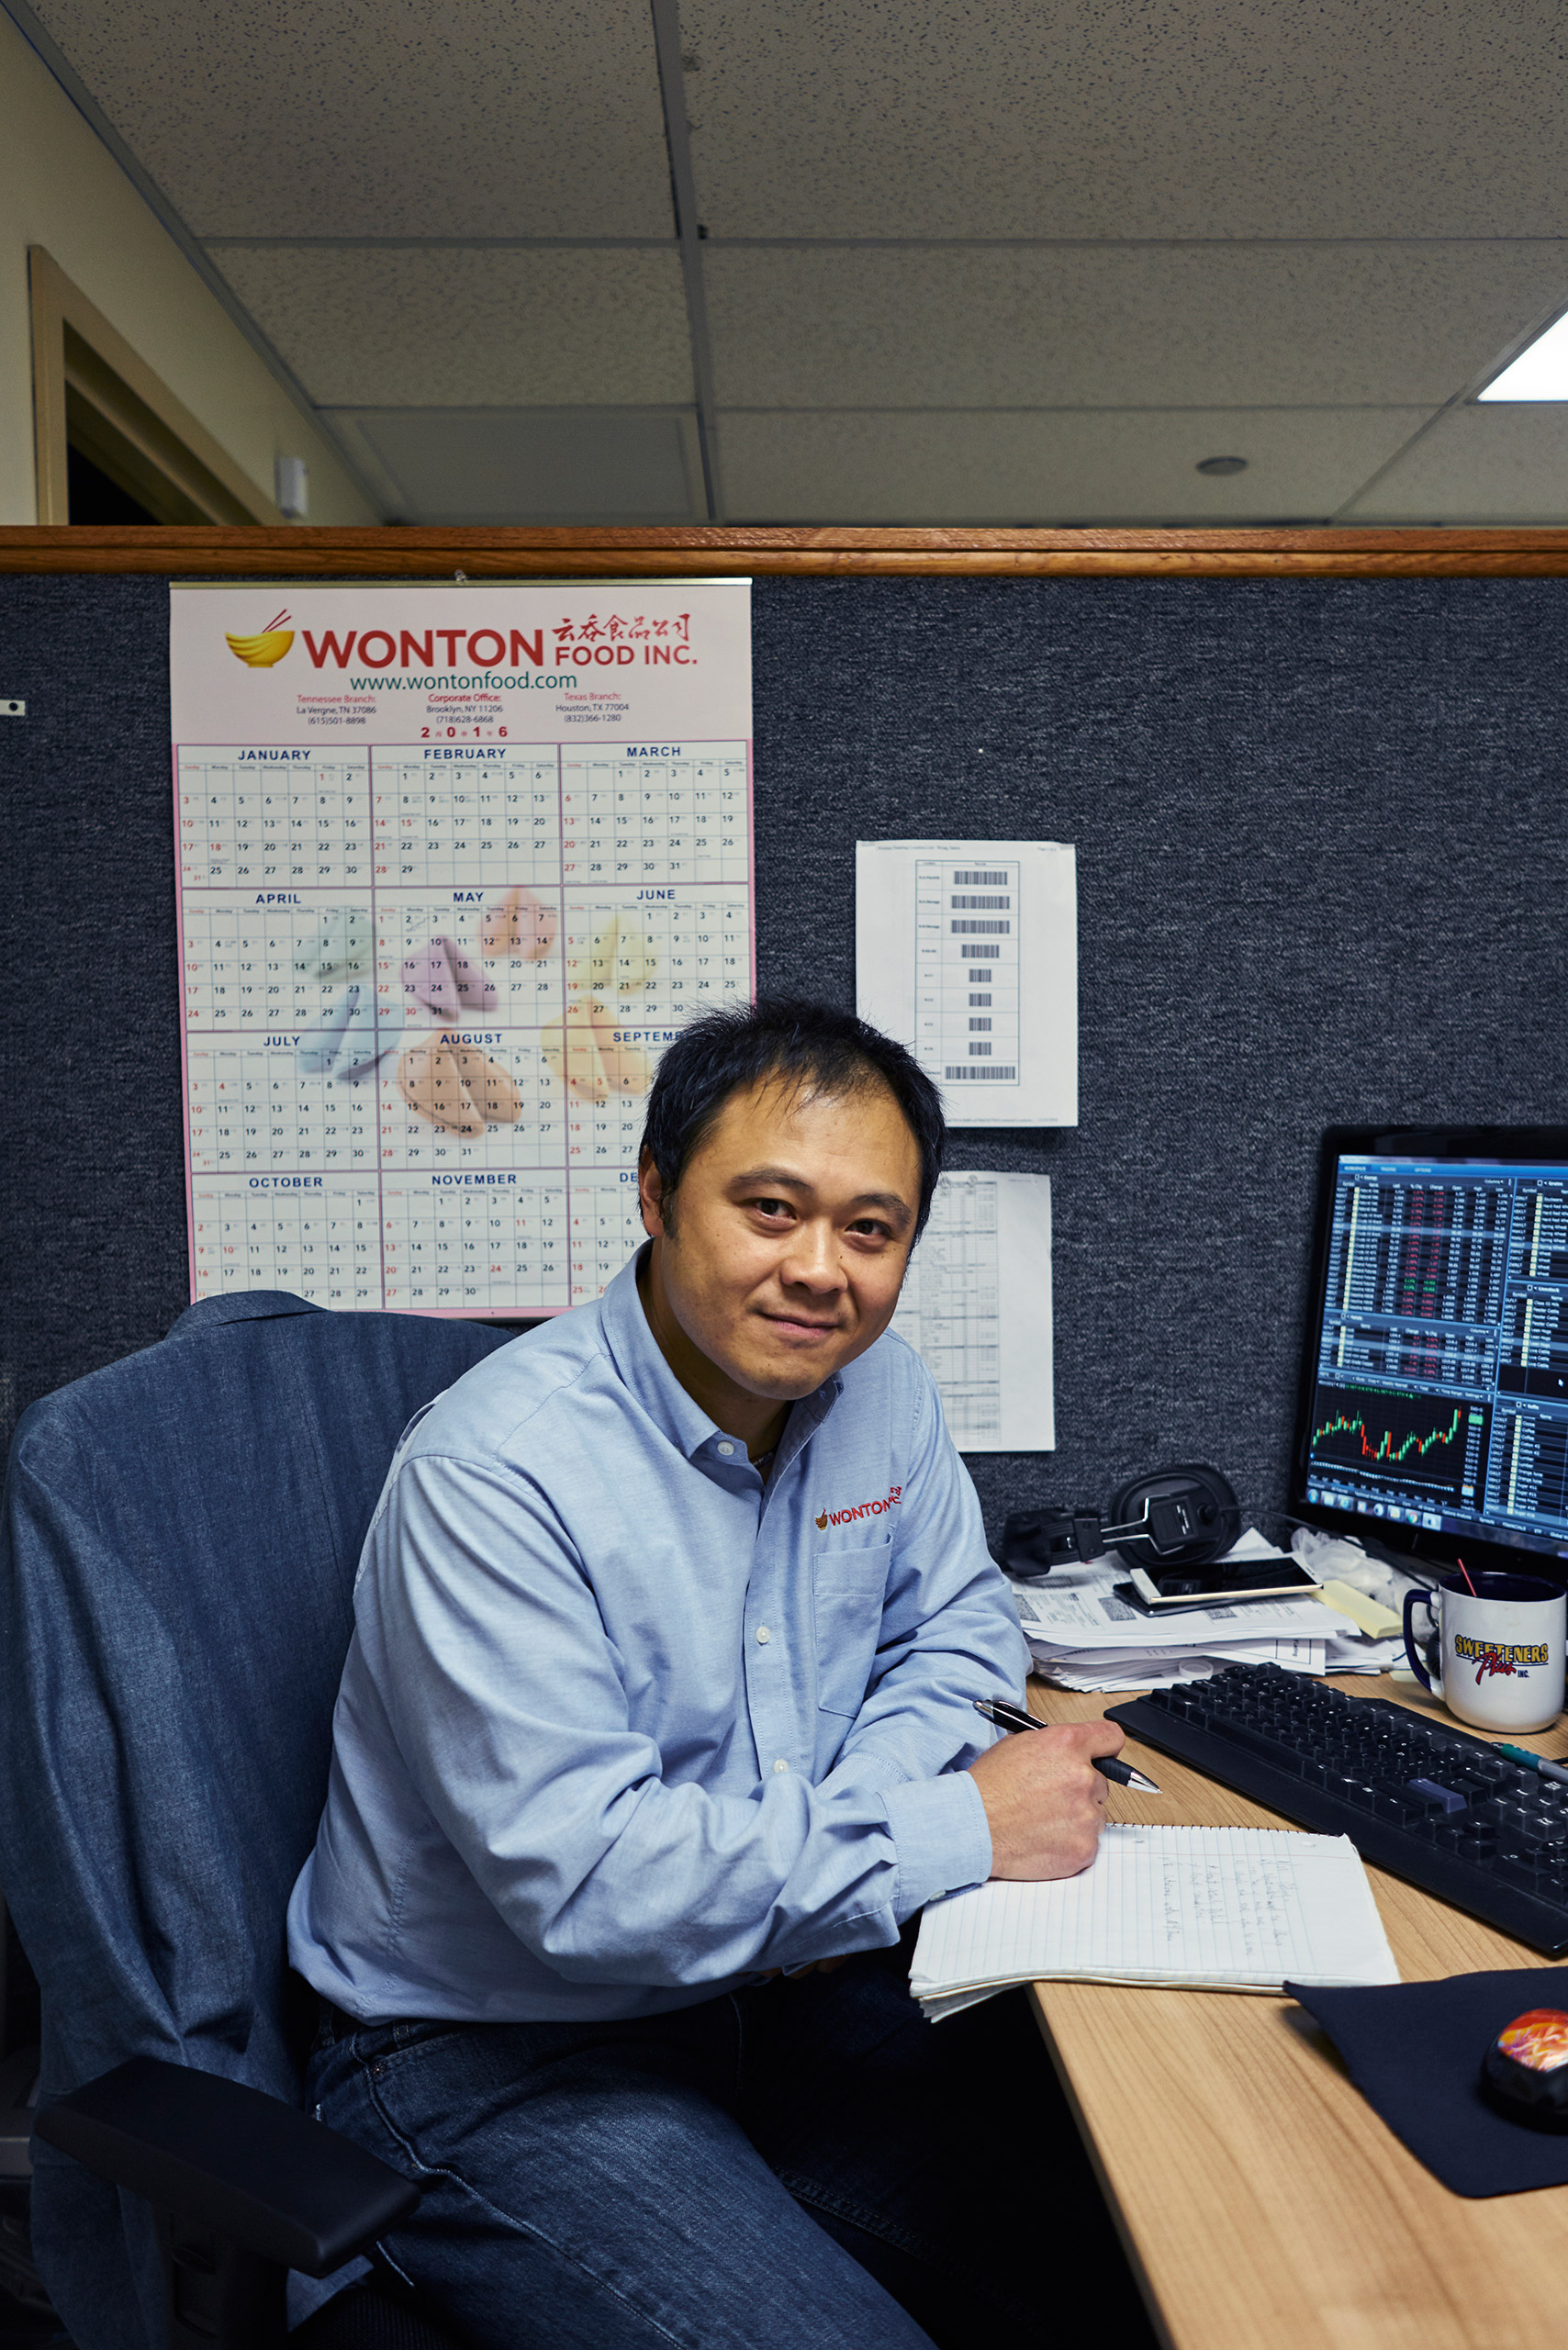 The new Chief Fortune Writer, James Wong, at his desk working. Wonton Food Inc. Brooklyn, New York. Jan. 18th, 2017